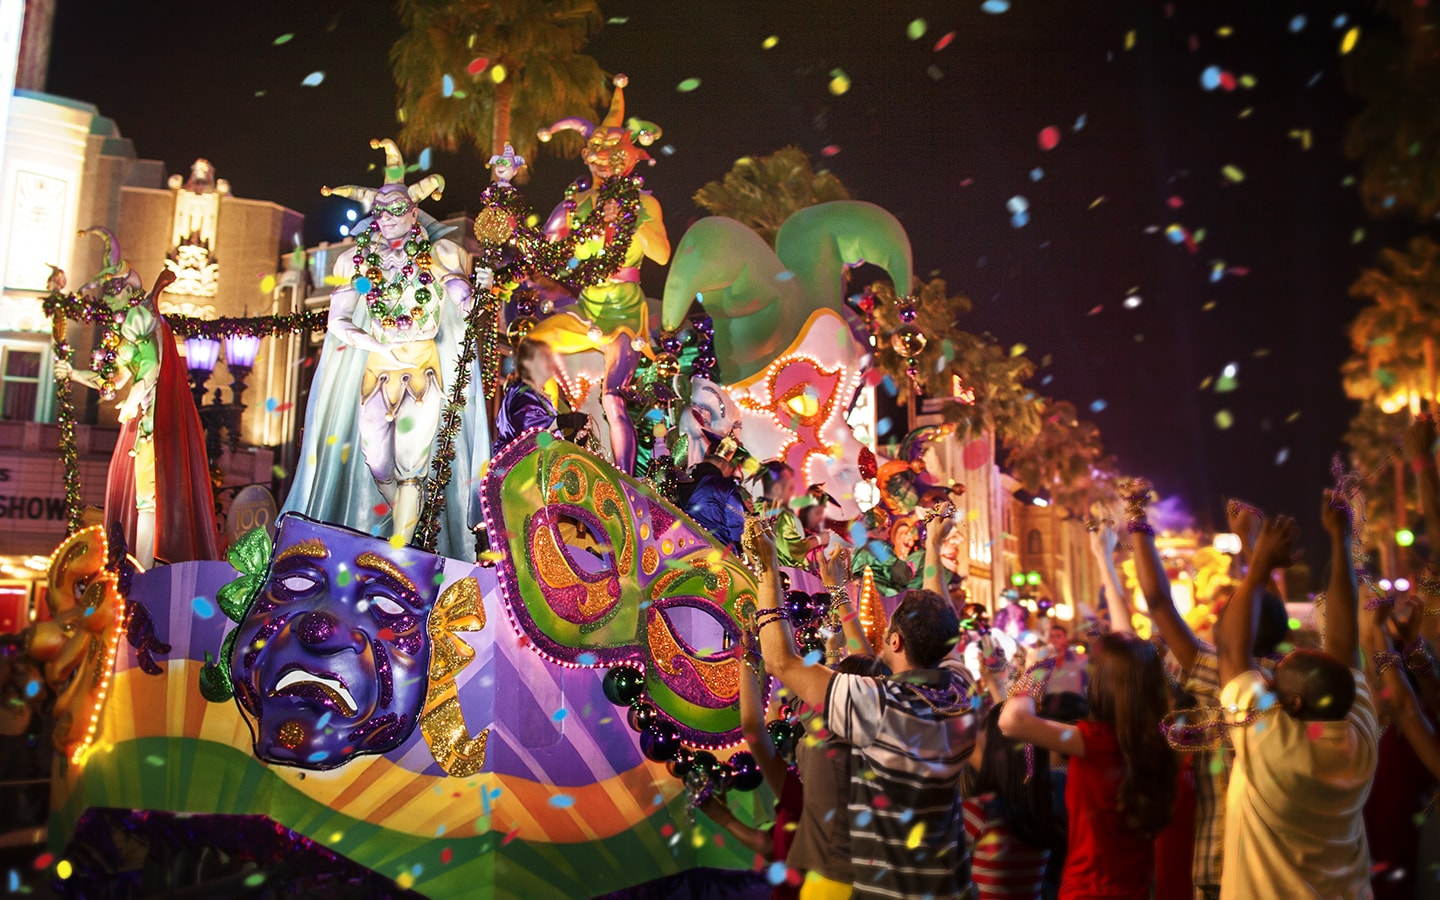 10 Things To Know About Mardi Gras